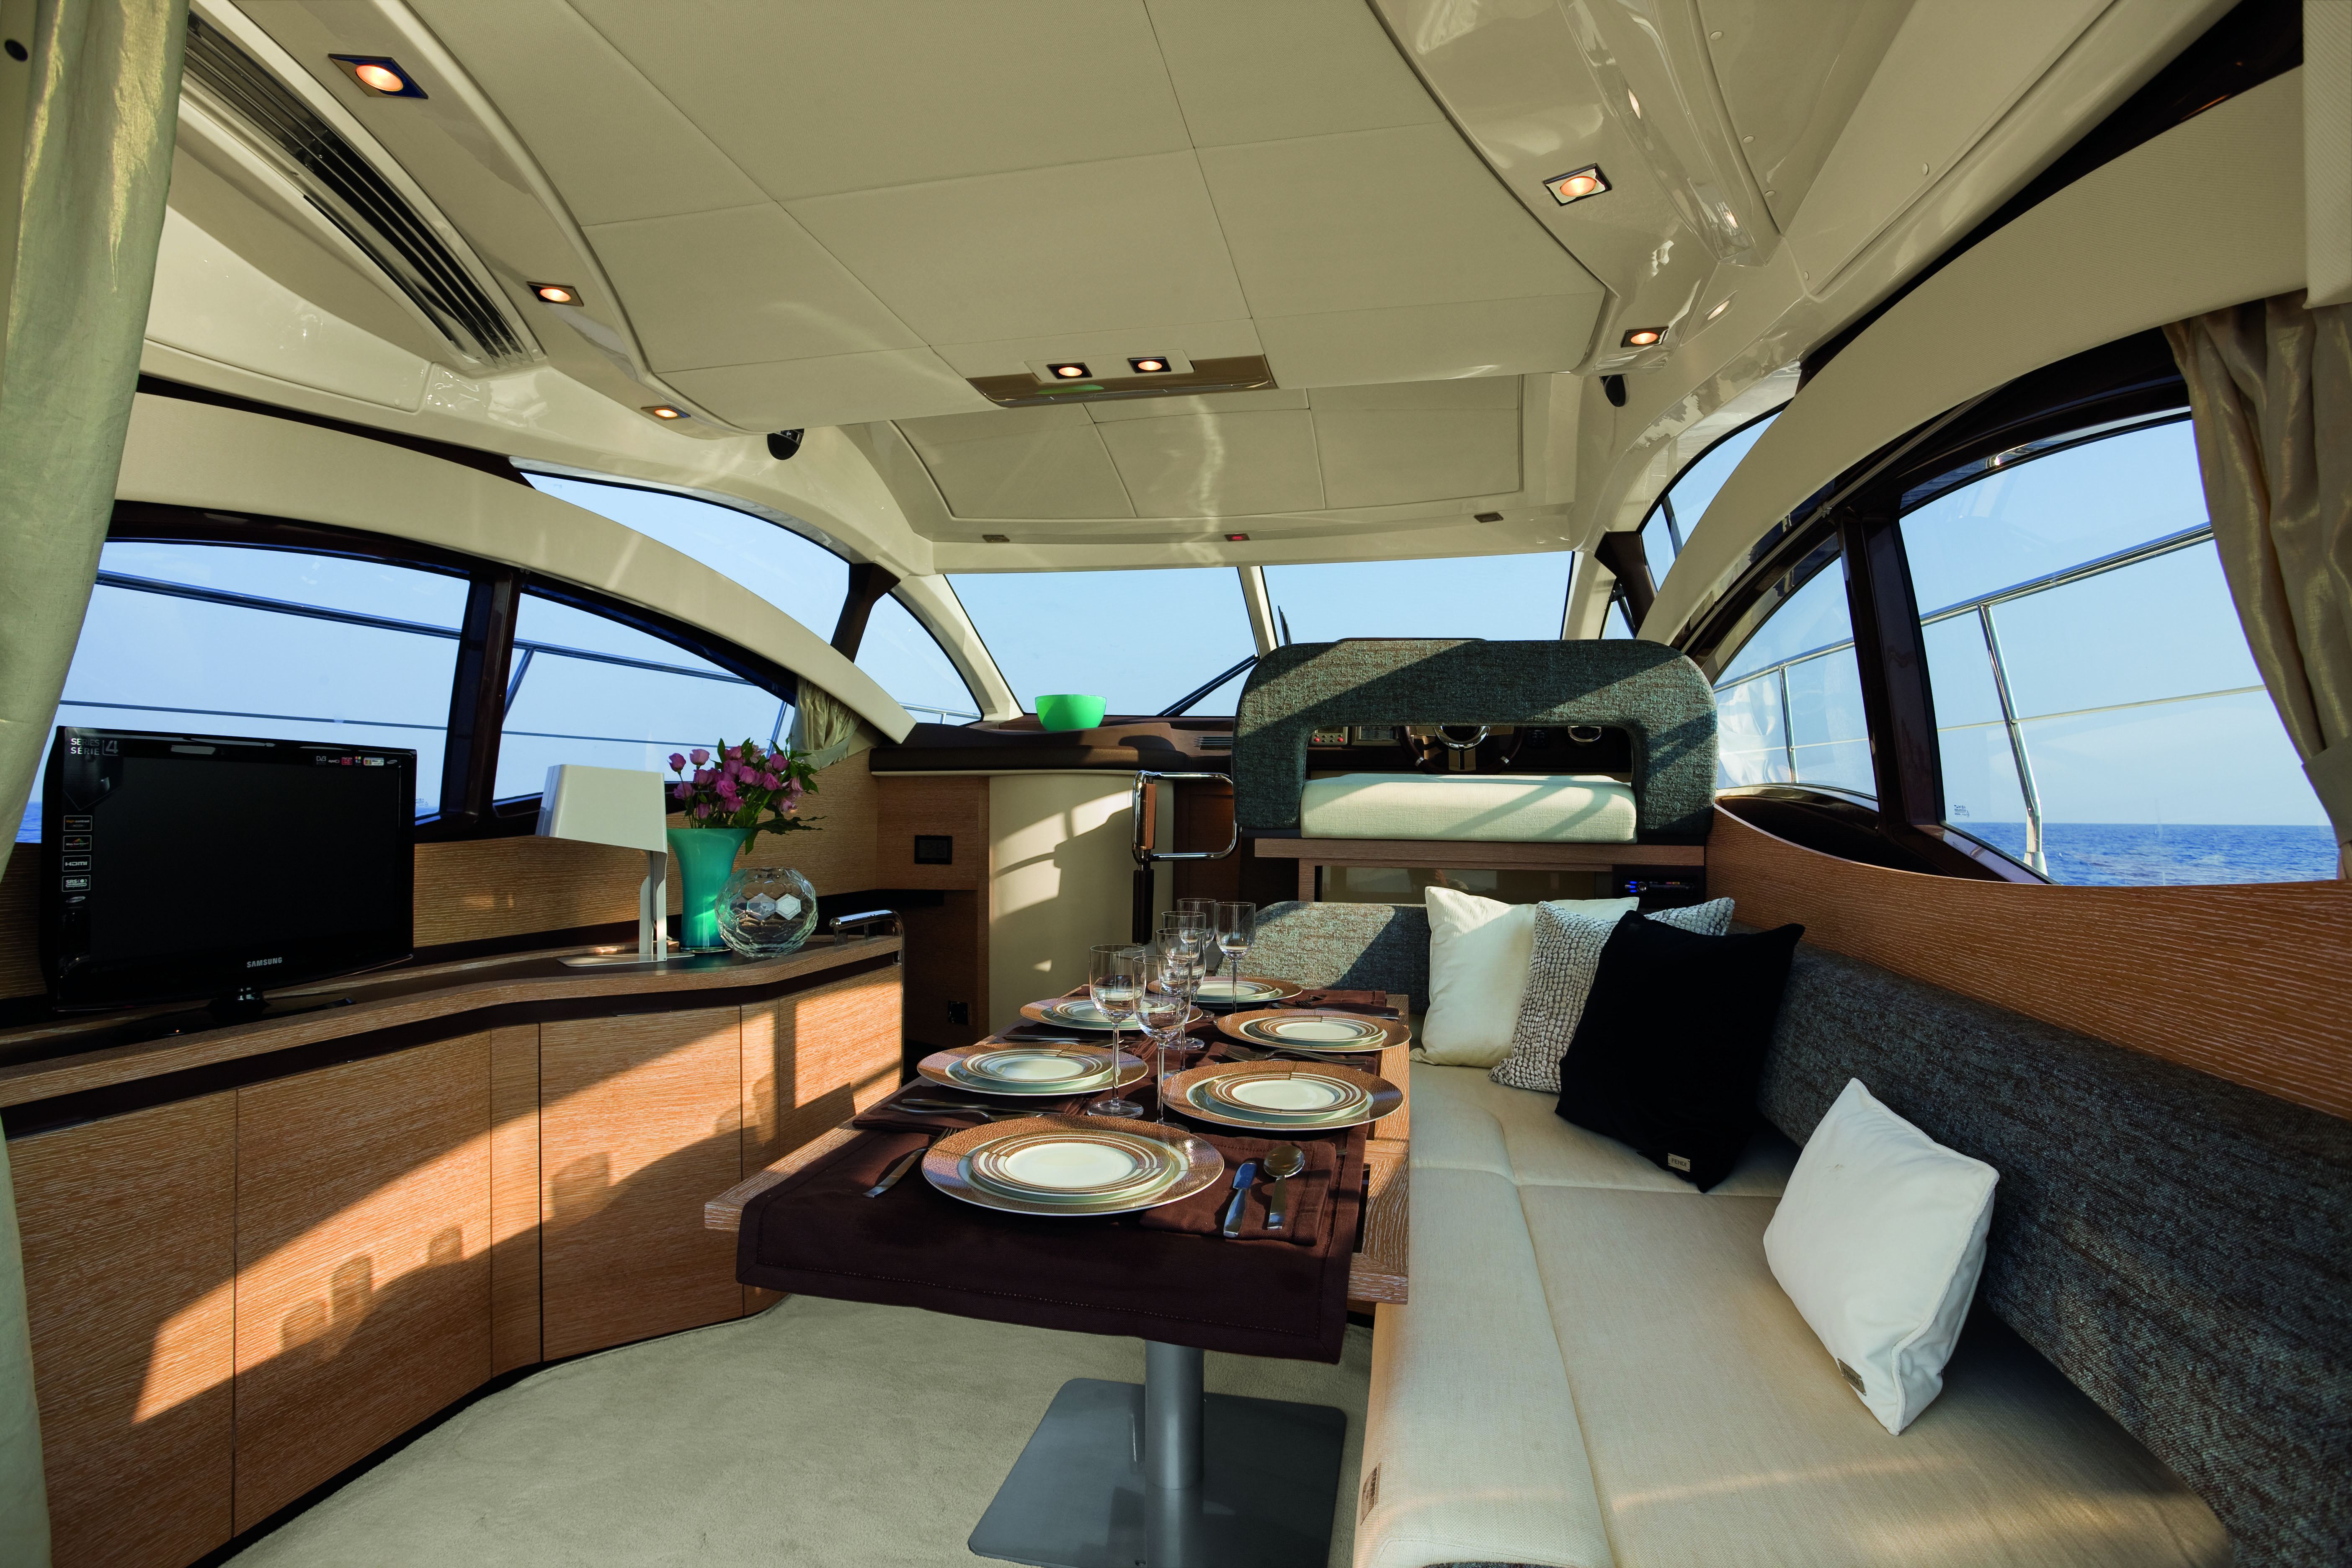 Azimut 38. The central zone is well lit thanks to the large side windows, ...